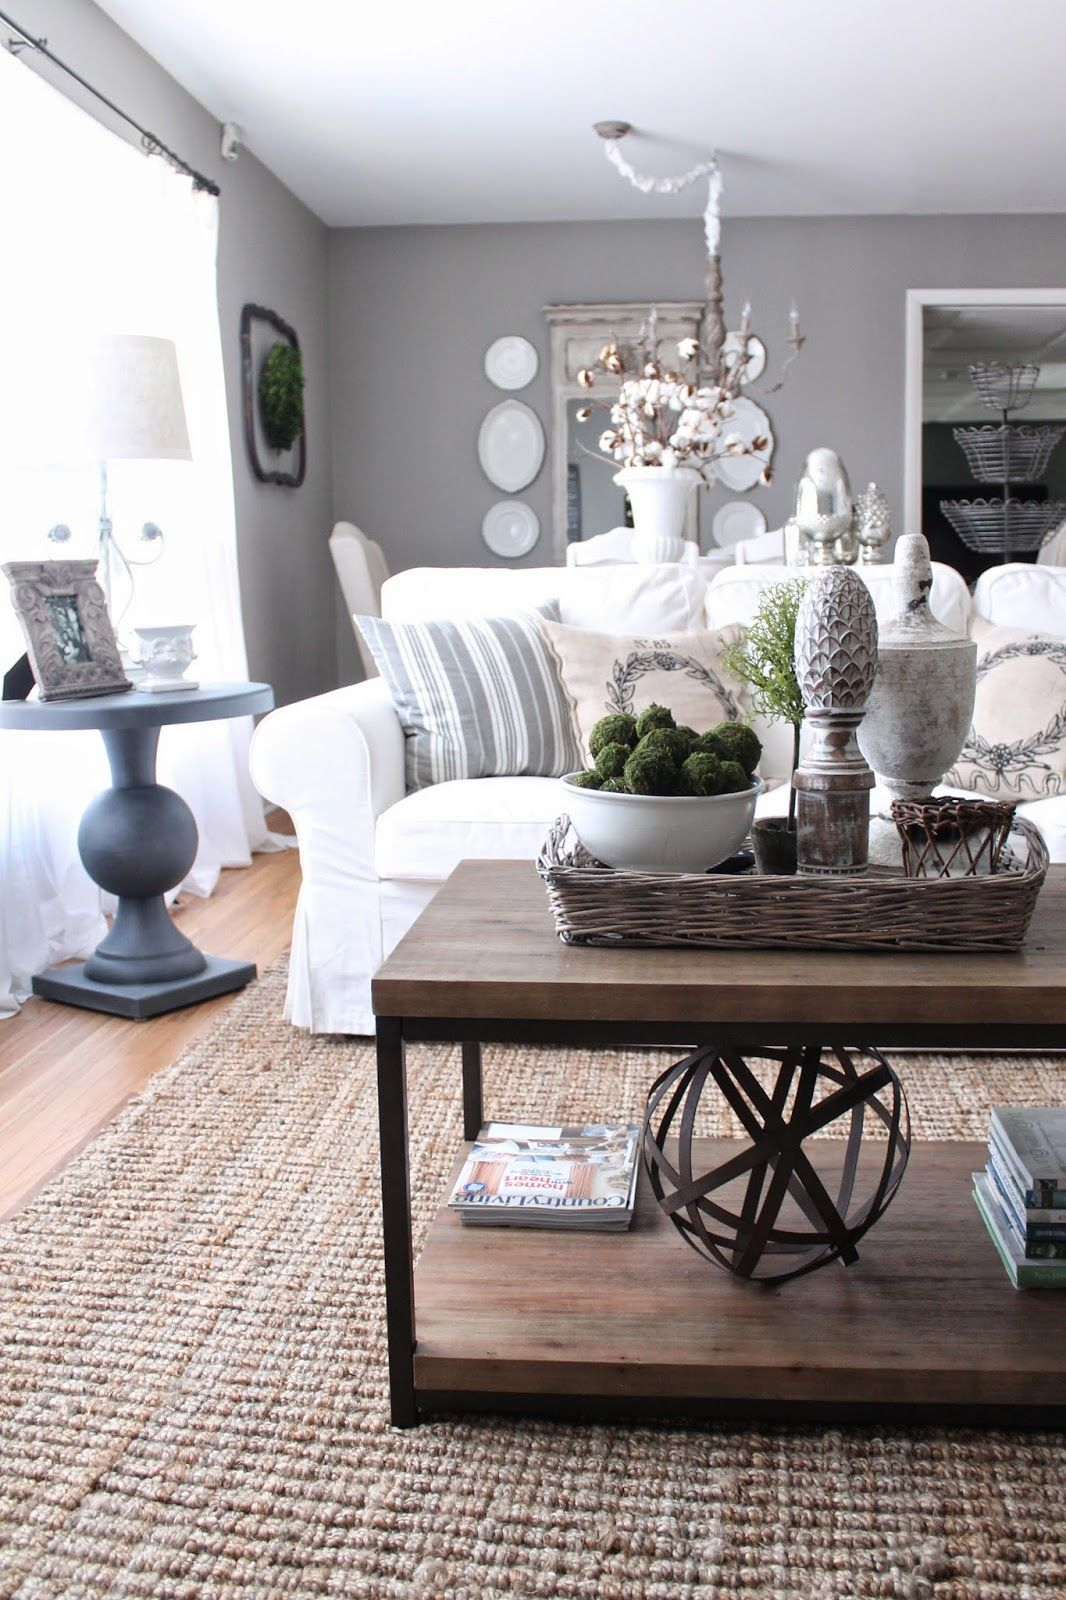 grey sofa black table mayo conversational living room walls and furnishings white couch